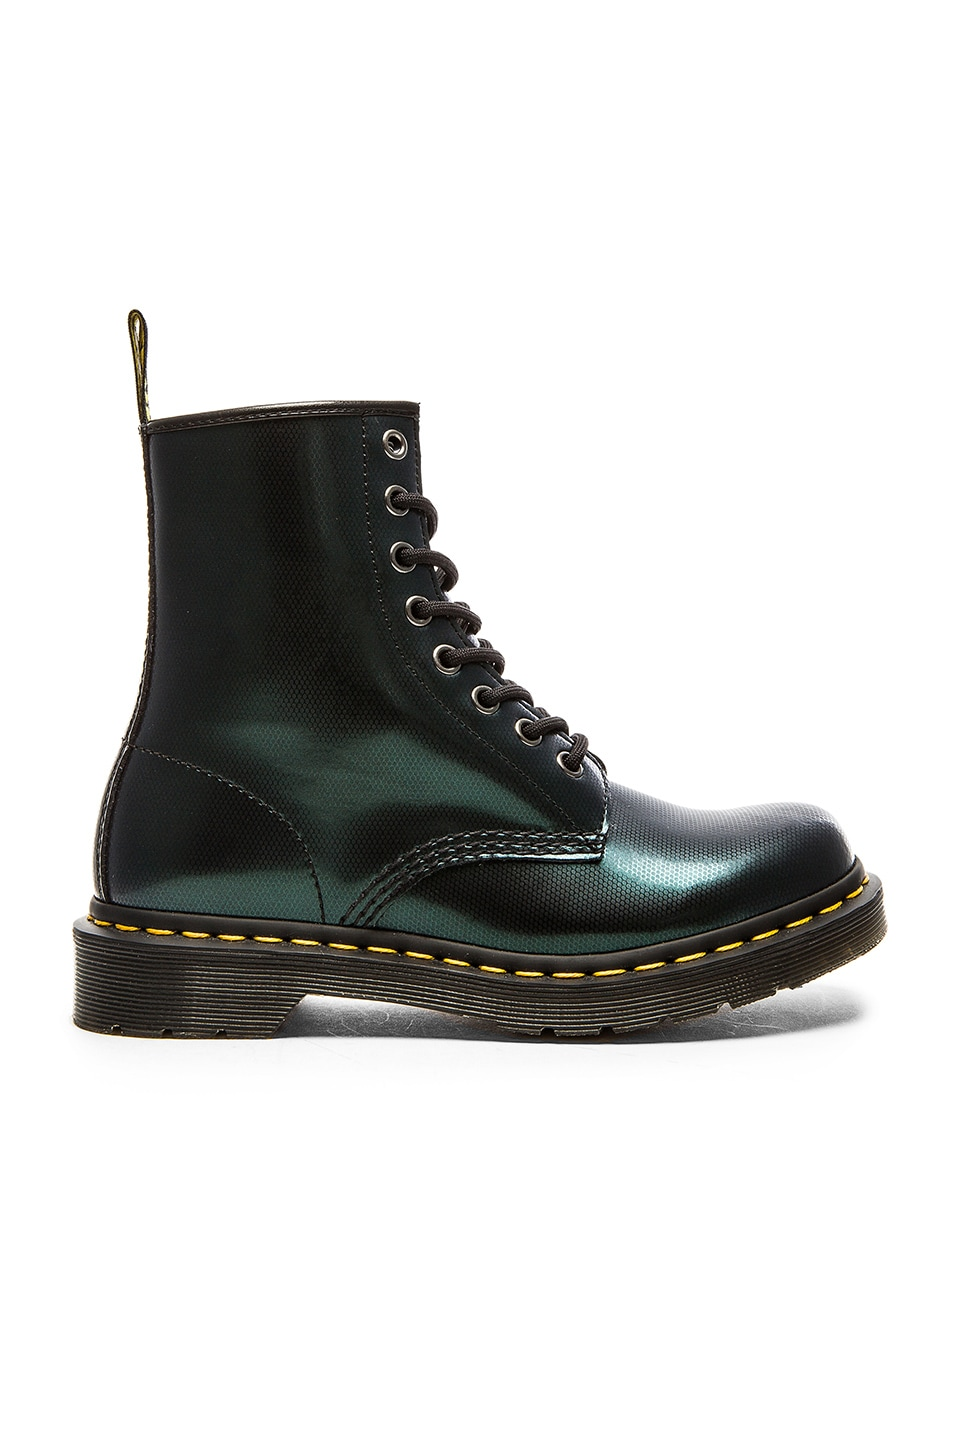 Dr. Martens 8 Eye Boot in Green